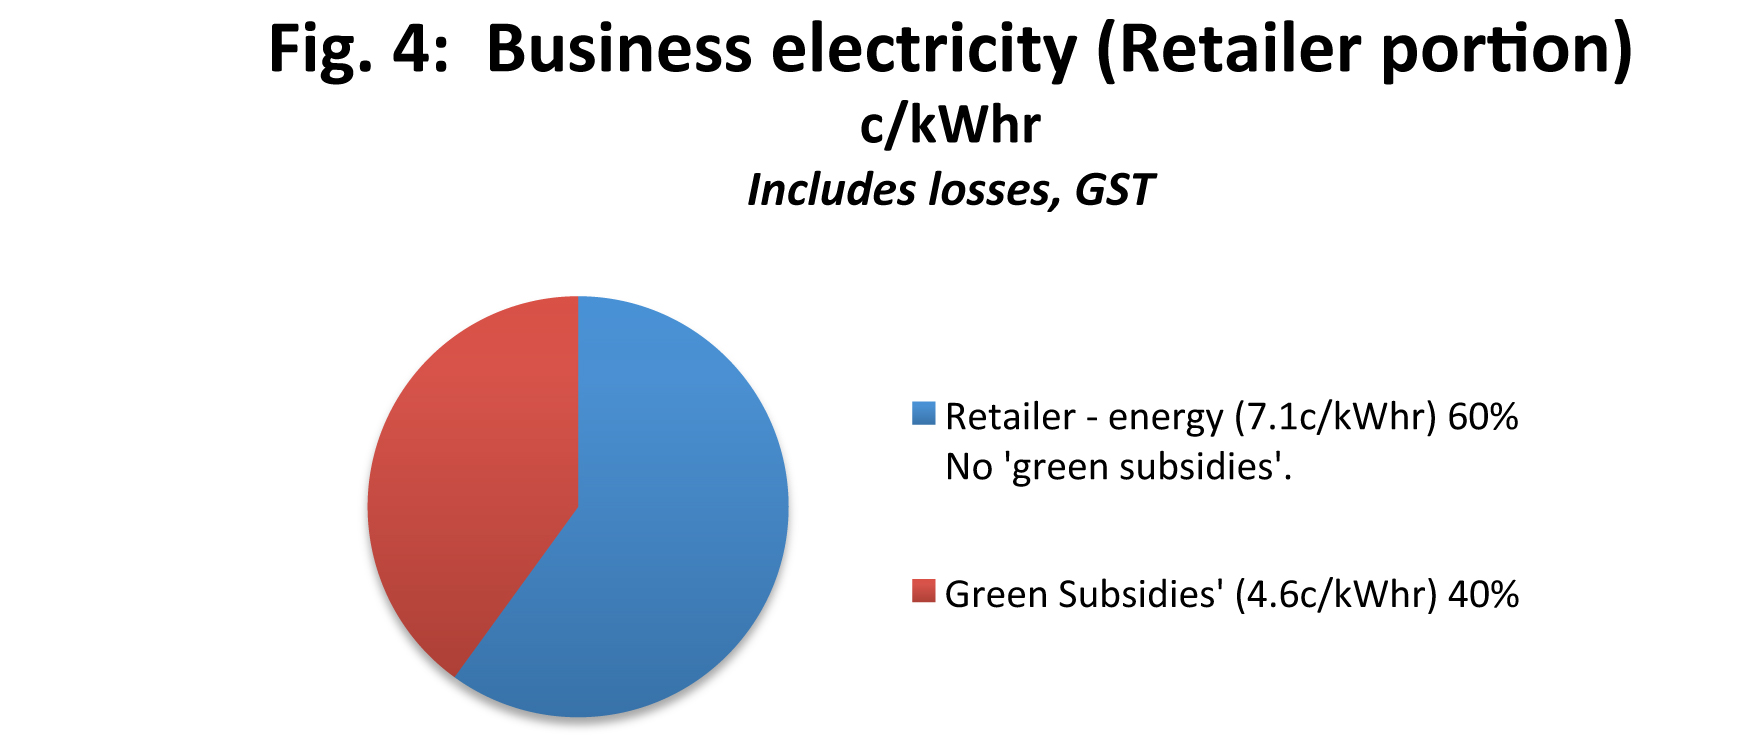 Impact of green subsidies on business